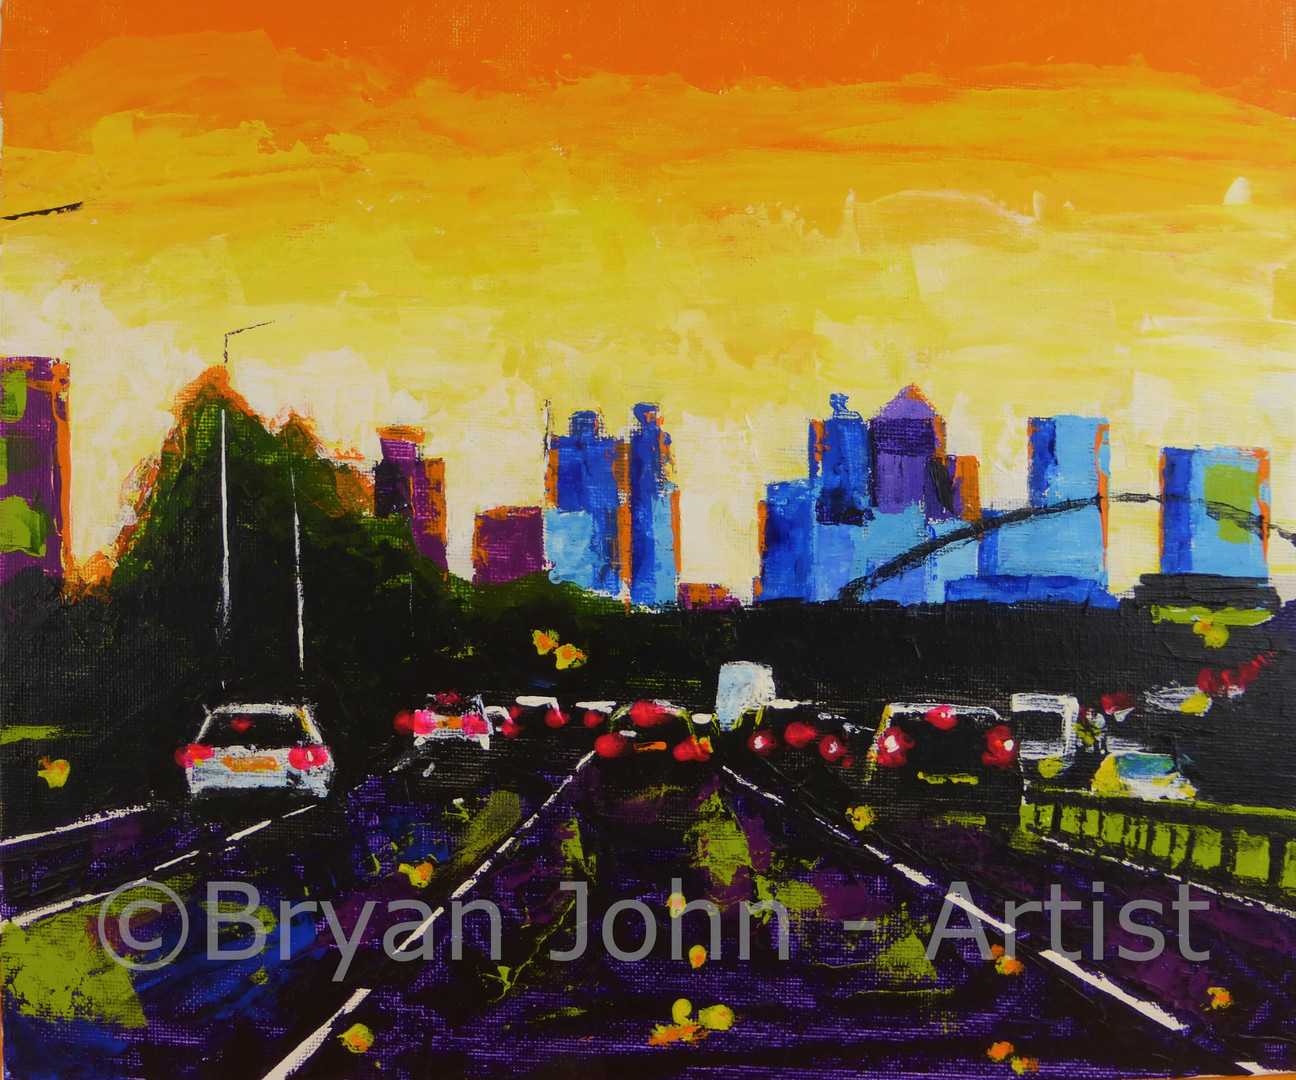 View of London from the Blackwall Tunnel Approach